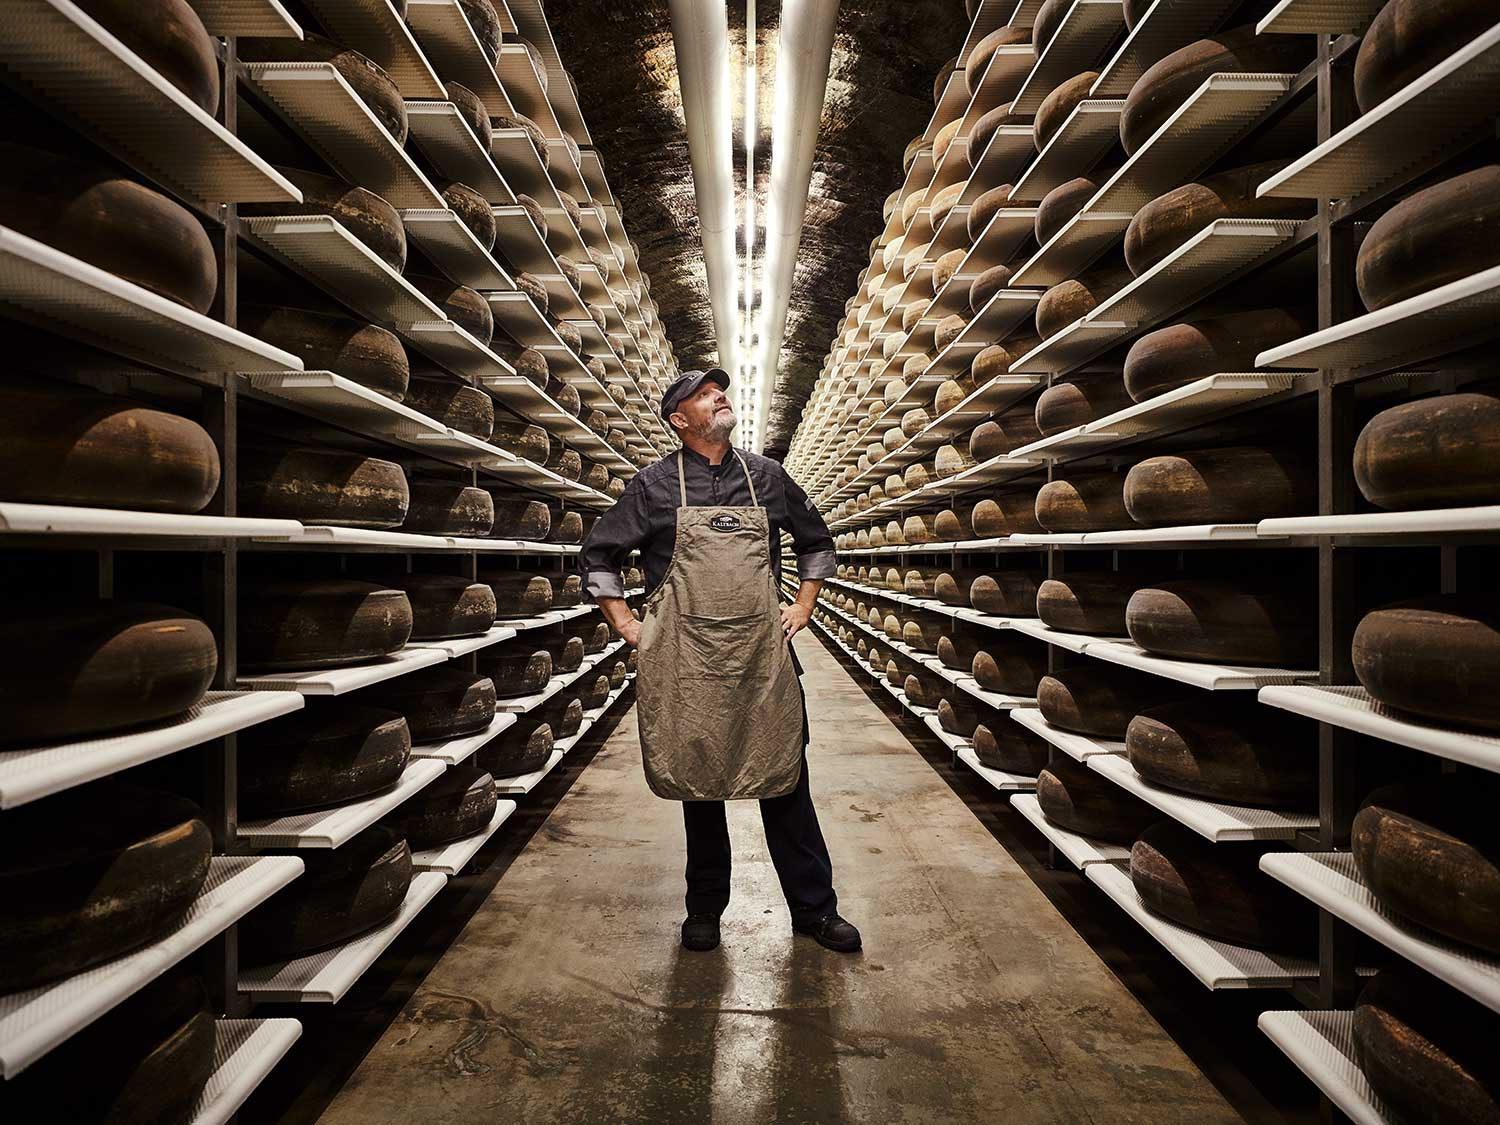 How a 22-Million-Year-Old Cave Became One of the World's Best Cheese Cellars